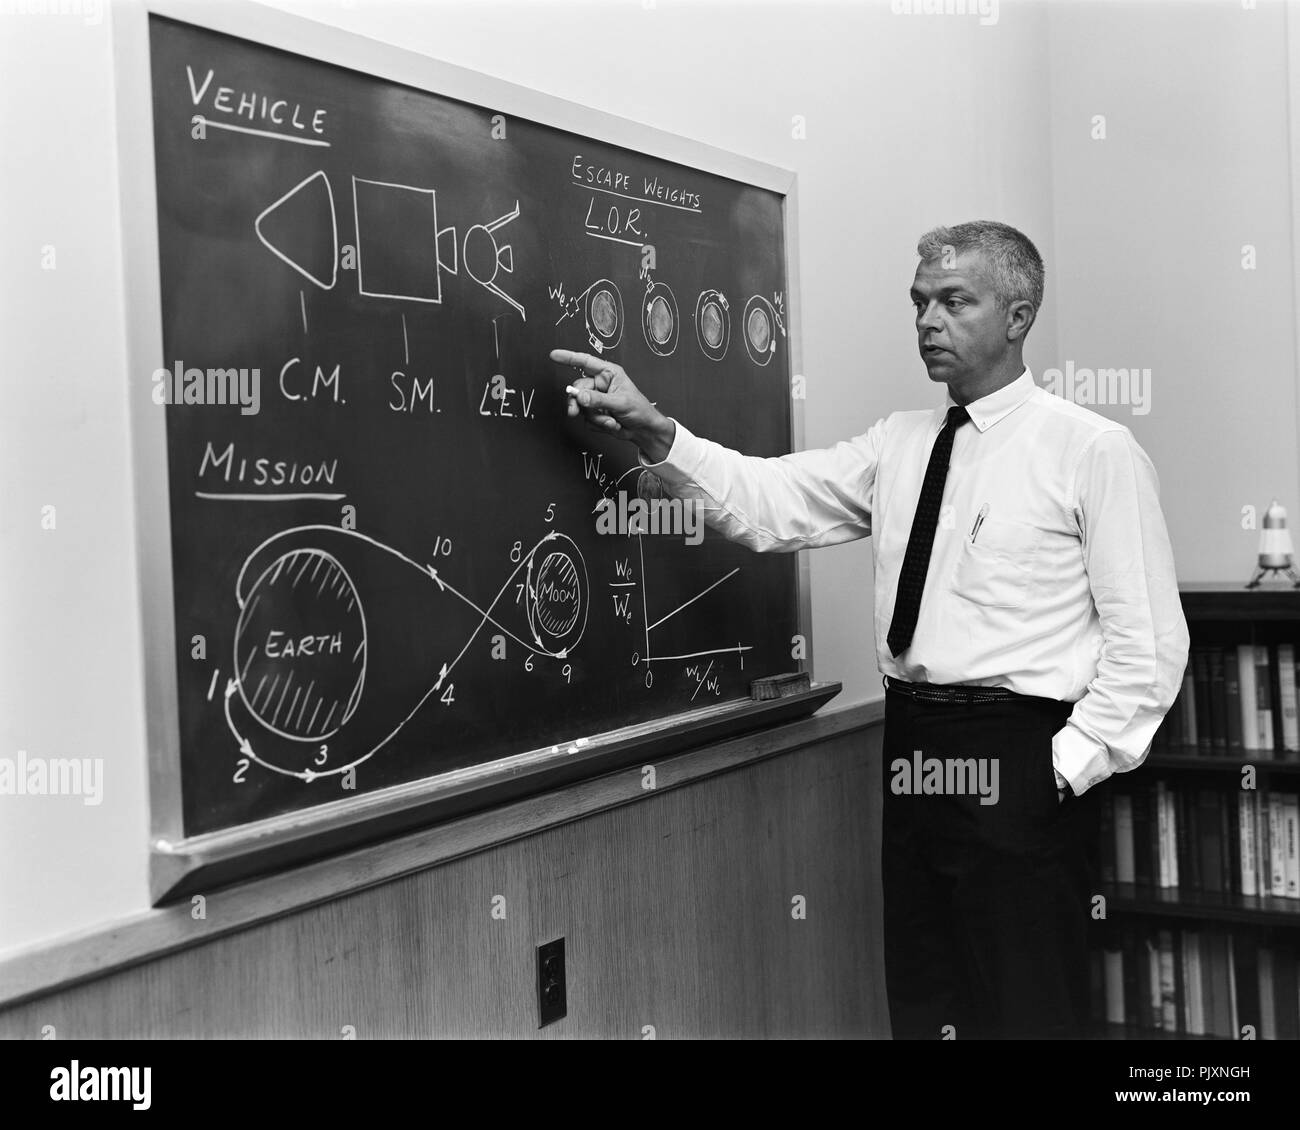 Langley Research Center, VA - (FILE) -- John C. Houbolt at blackboard, showing his space rendezvous concept for lunar landings on July 24, 1962. Lunar Orbital Rendezvous (LOR) would be used in the Apollo program. Although Houbolt did not invent the idea of LOR, he was the person most responsible for pushing it at NASA. Credit: Bob Nye - NASA via CNP /MediaPunch - Stock Image